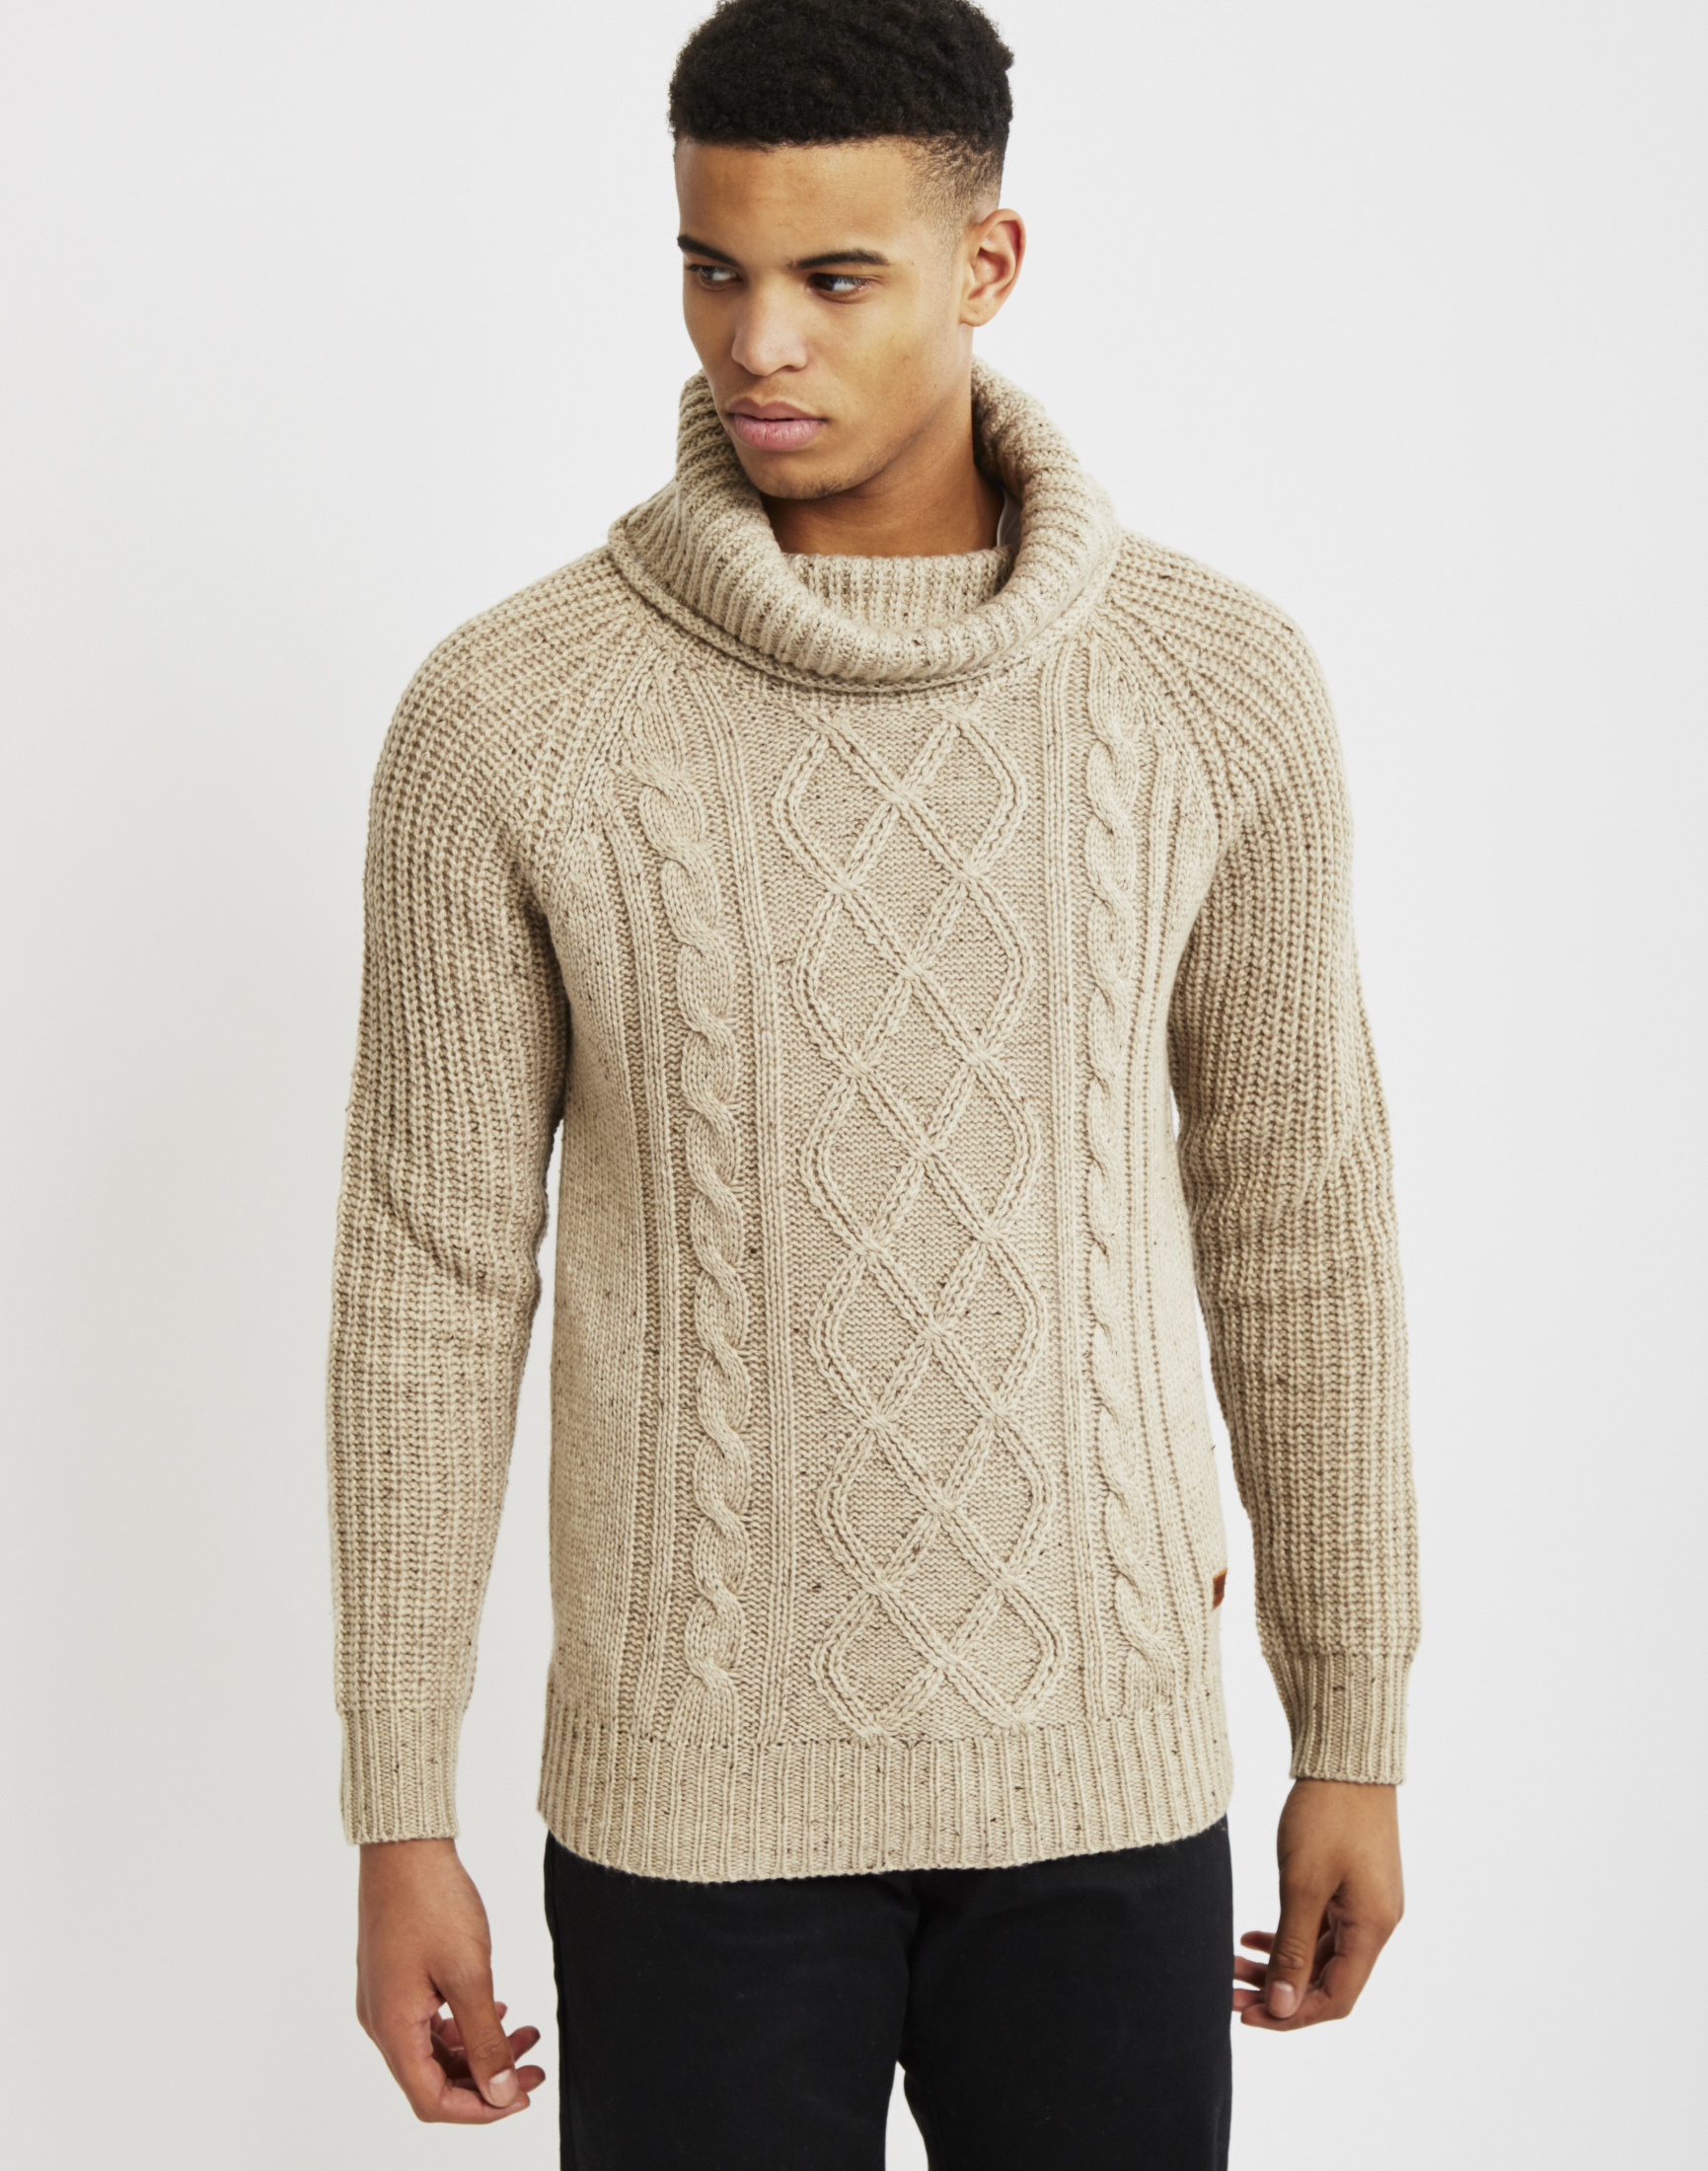 Knitting Mens Jumpers : Lyst only sons mens knitted pullover cable knit jumper